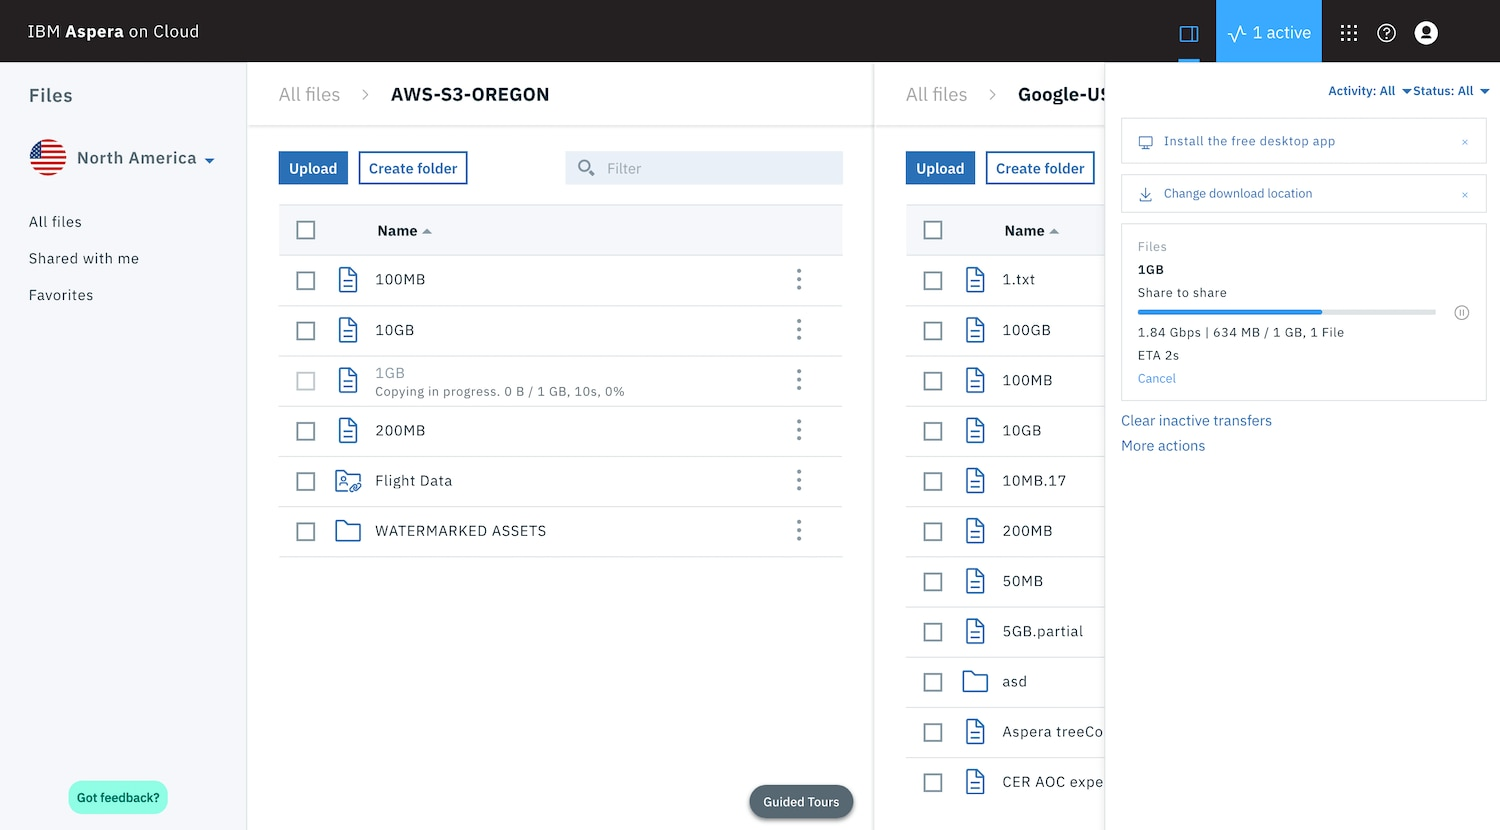 User interface of Aspera capability to drag-and-drop data between cloud and on-premises storage with Aspera